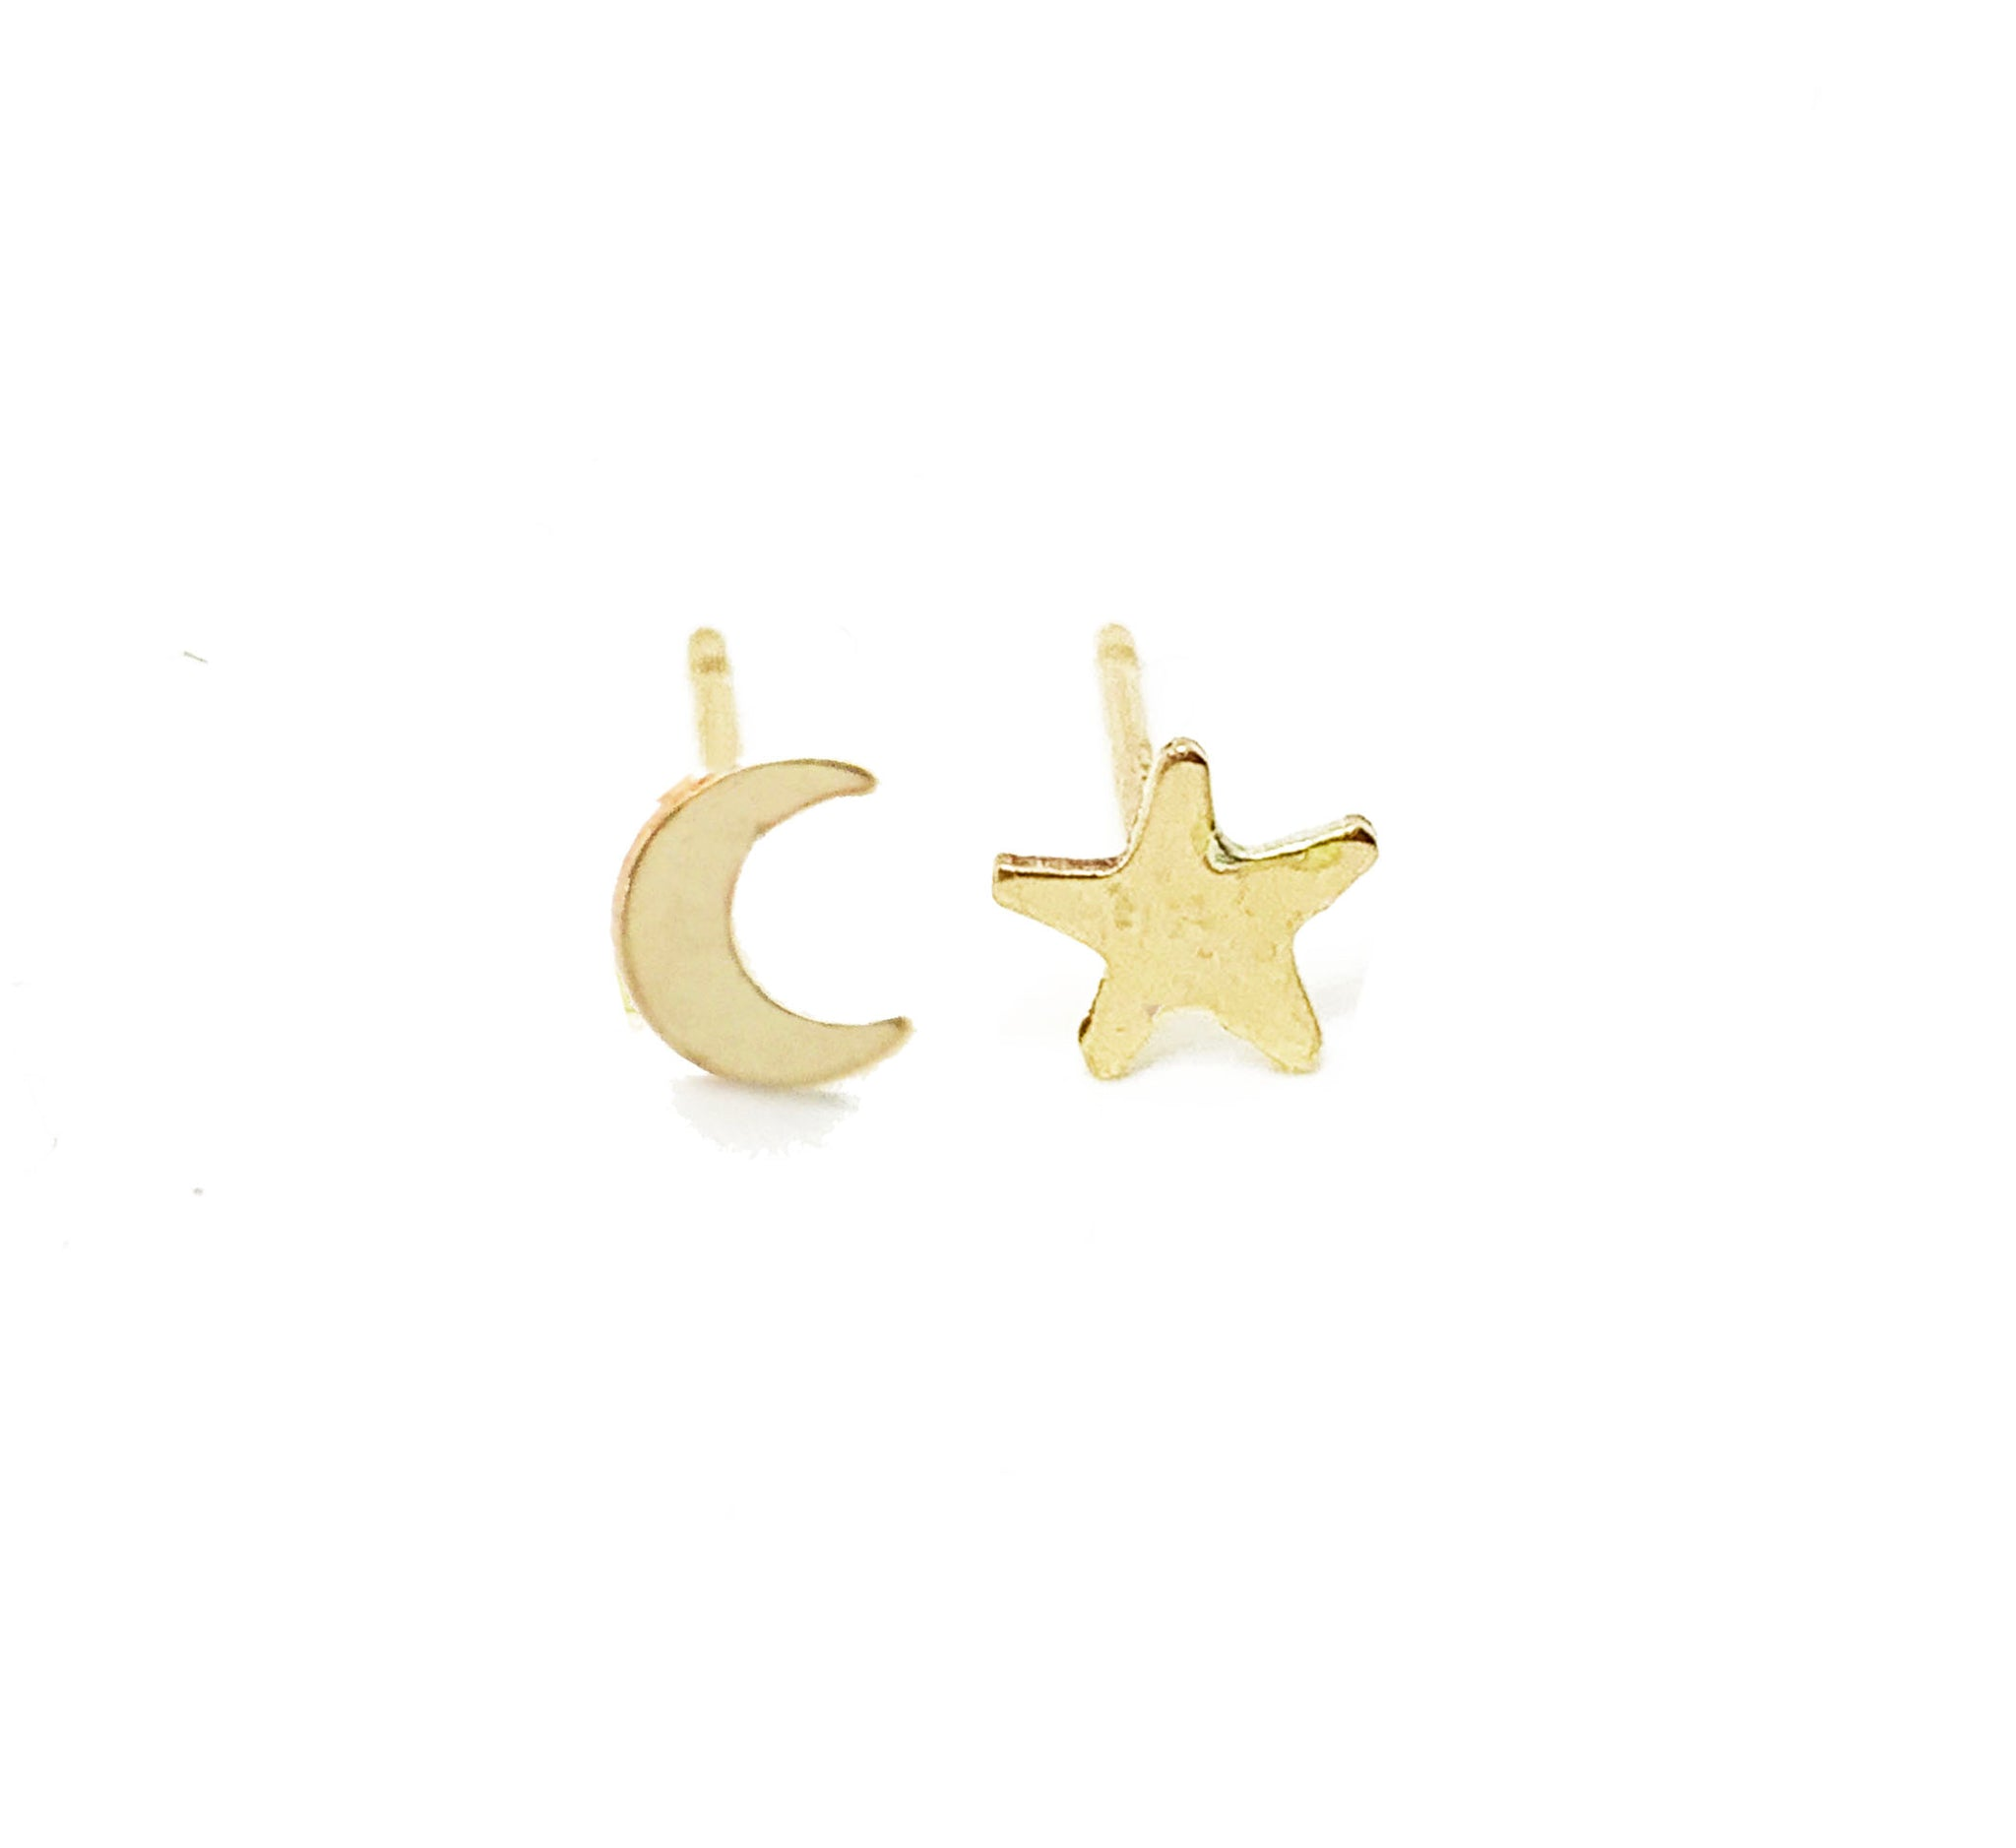 Selah Vie Moon & Star stud earrings